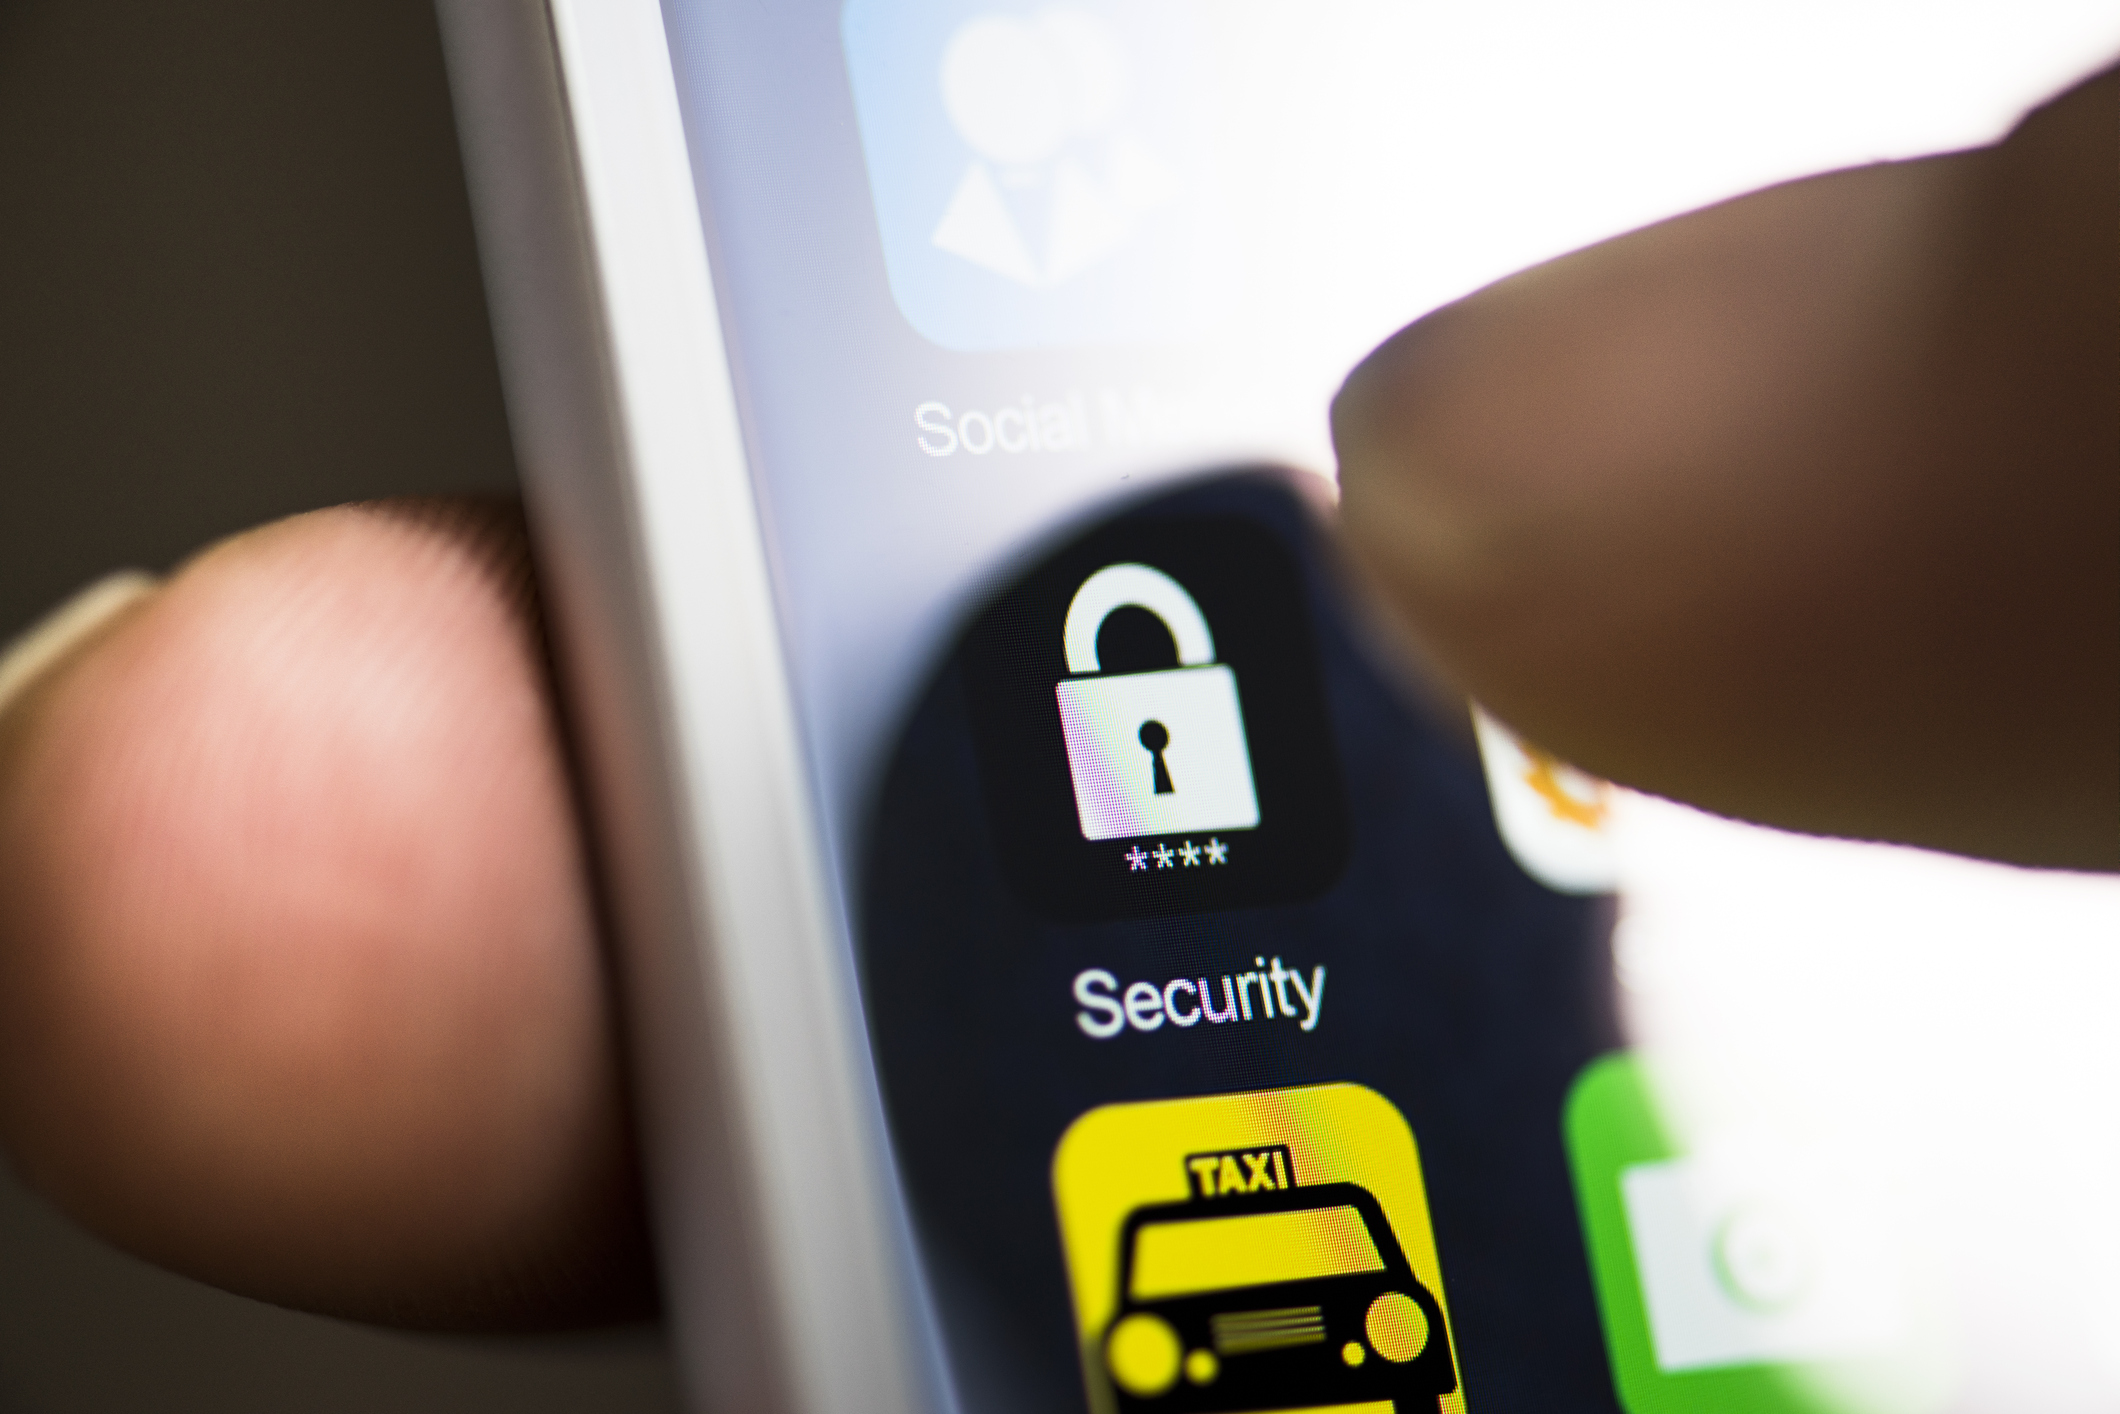 Security Systems - Protect your property by easily arming your home with a keypad, remote keyfob or smartphone. Arm only windows, doors and certain areas while you are asleep at night. Receive alarm breach alerts directly to your smartphone with the ability to connect from anywhere to check on your home. Ensure complete security and peace of mind when you are at home or away.